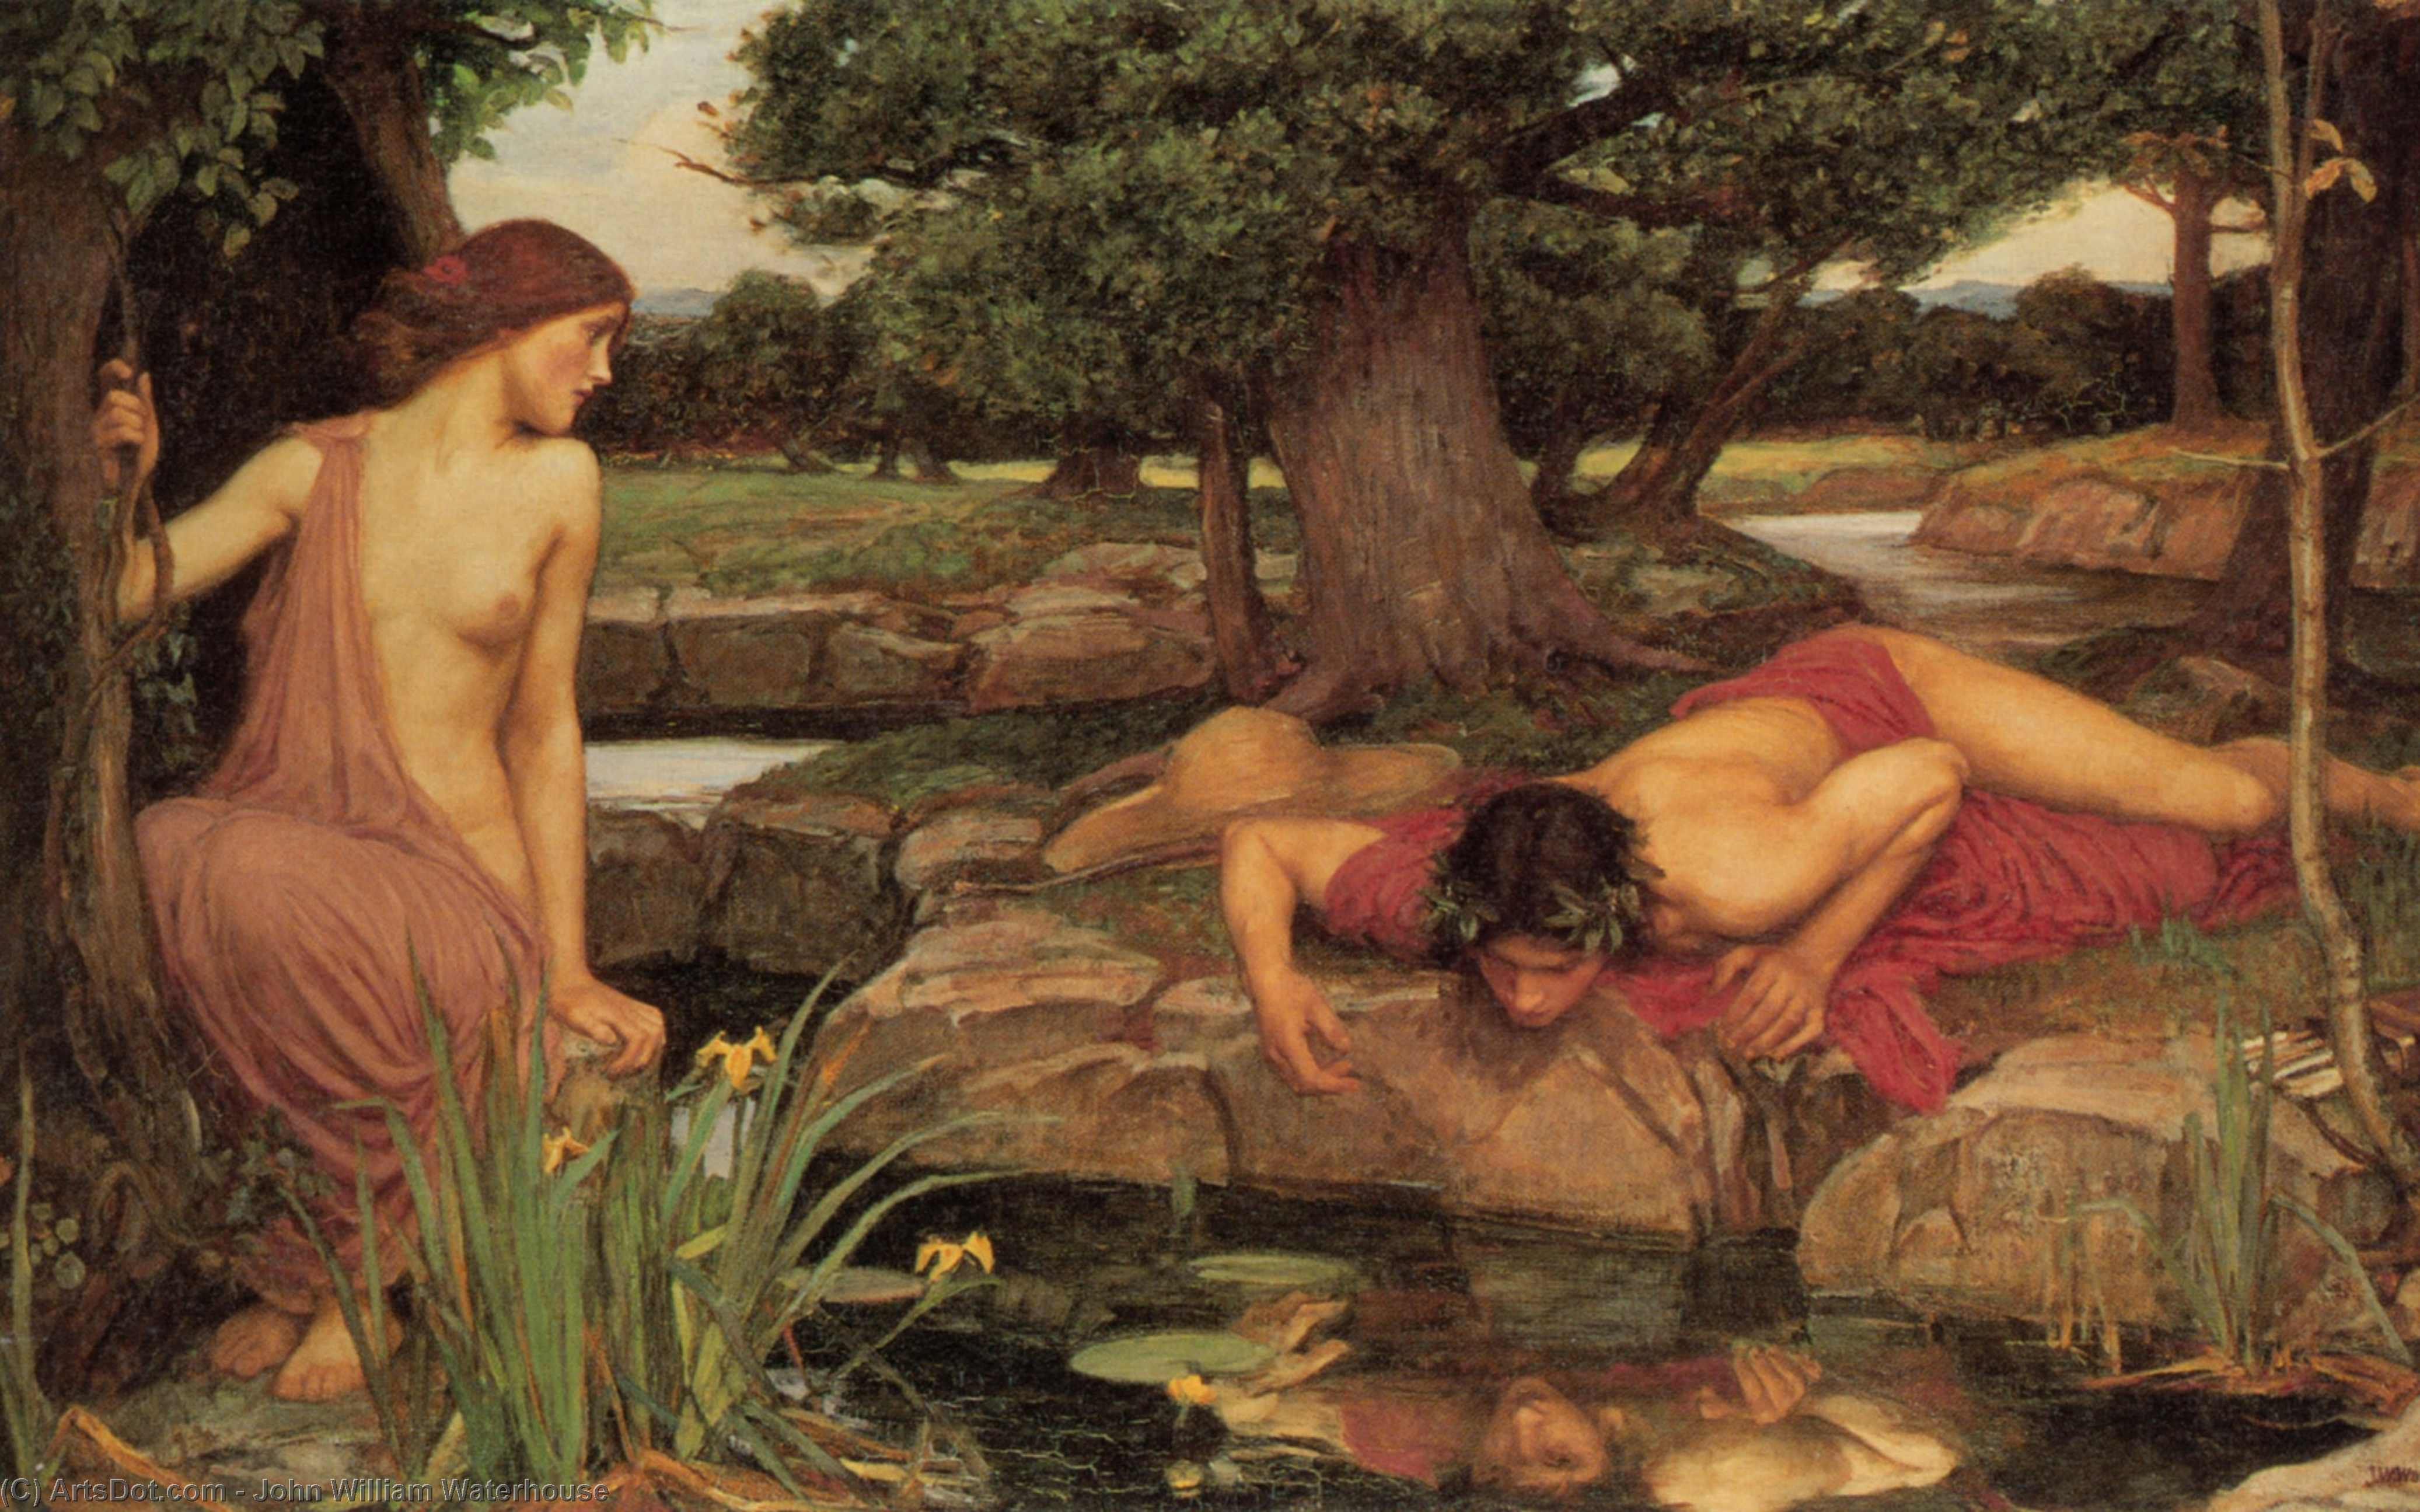 Wikioo.org - The Encyclopedia of Fine Arts - Painting, Artwork by John William Waterhouse - Echo and Narcissus